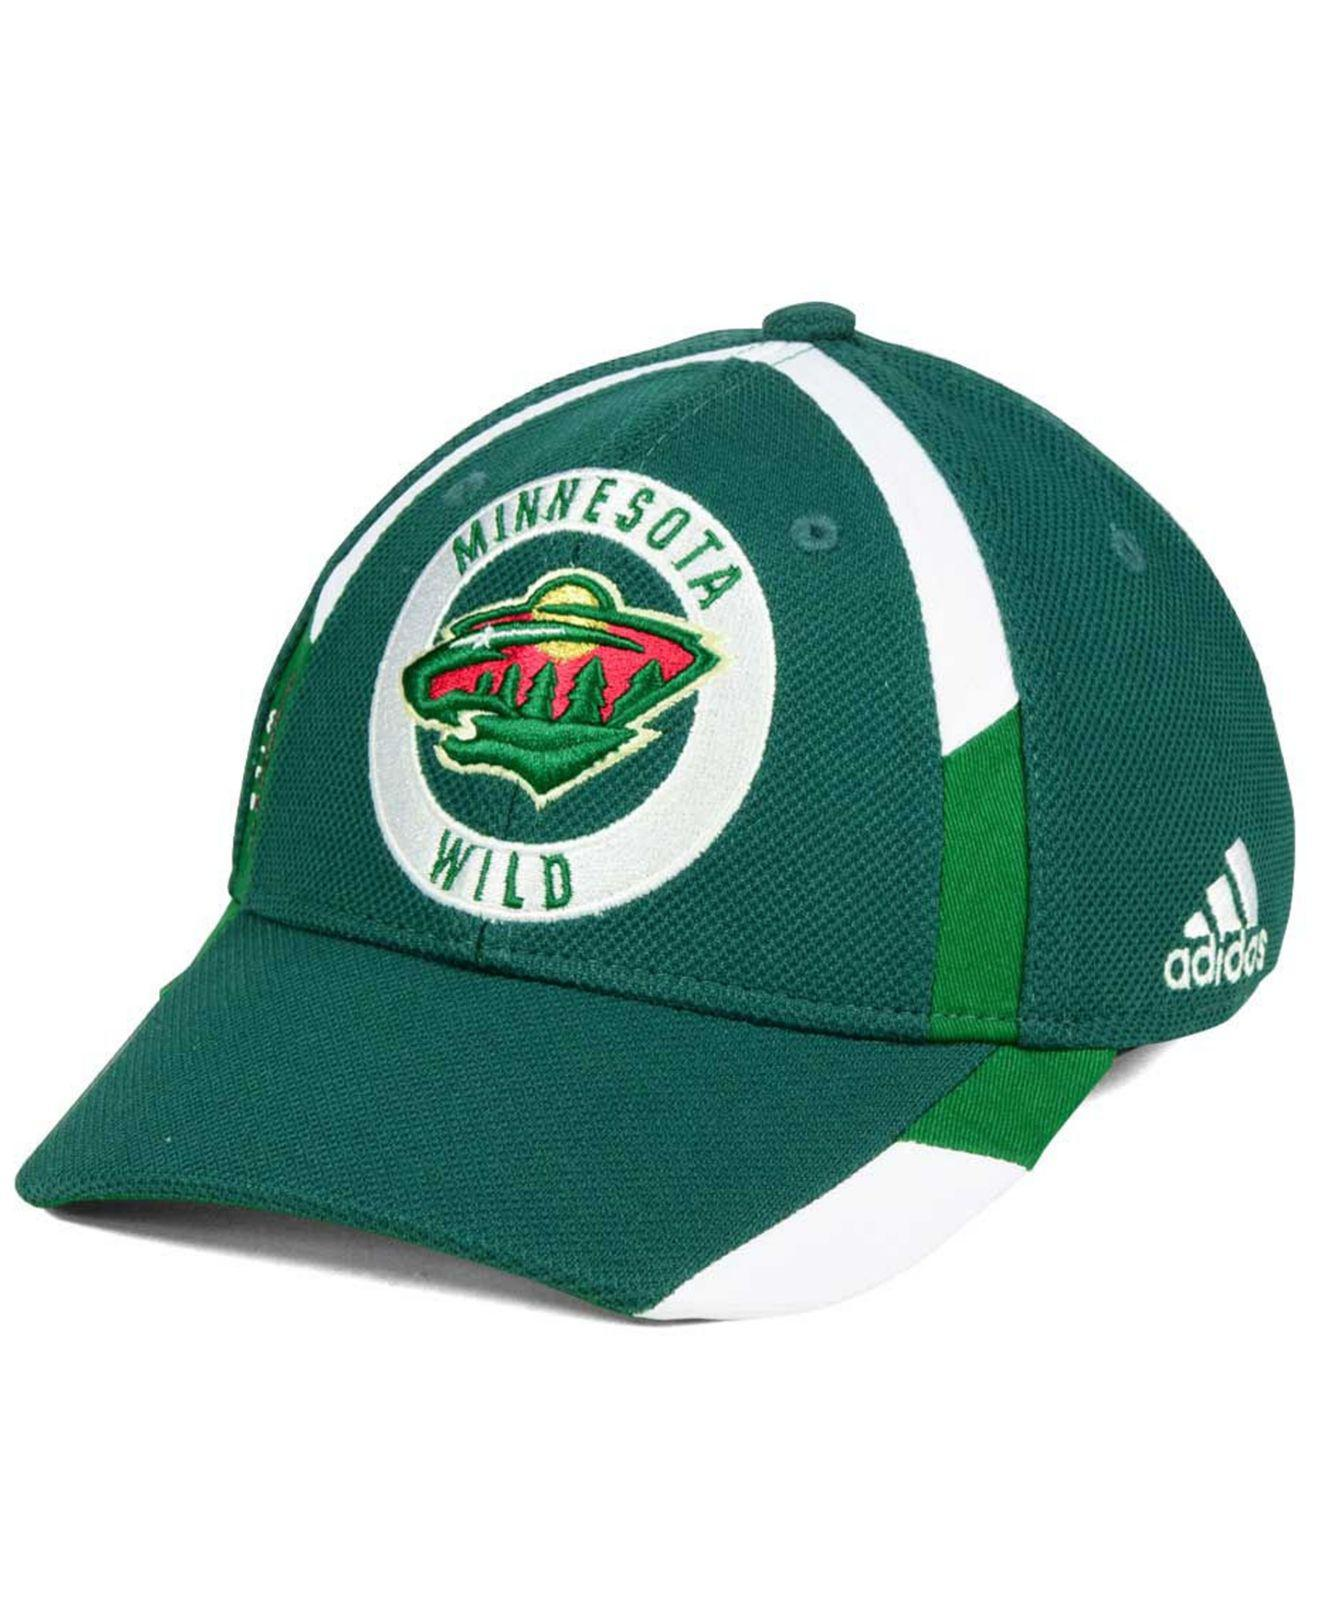 85c4f9cb7d563 Lyst - adidas Practice Jersey Hook Cap in Green for Men